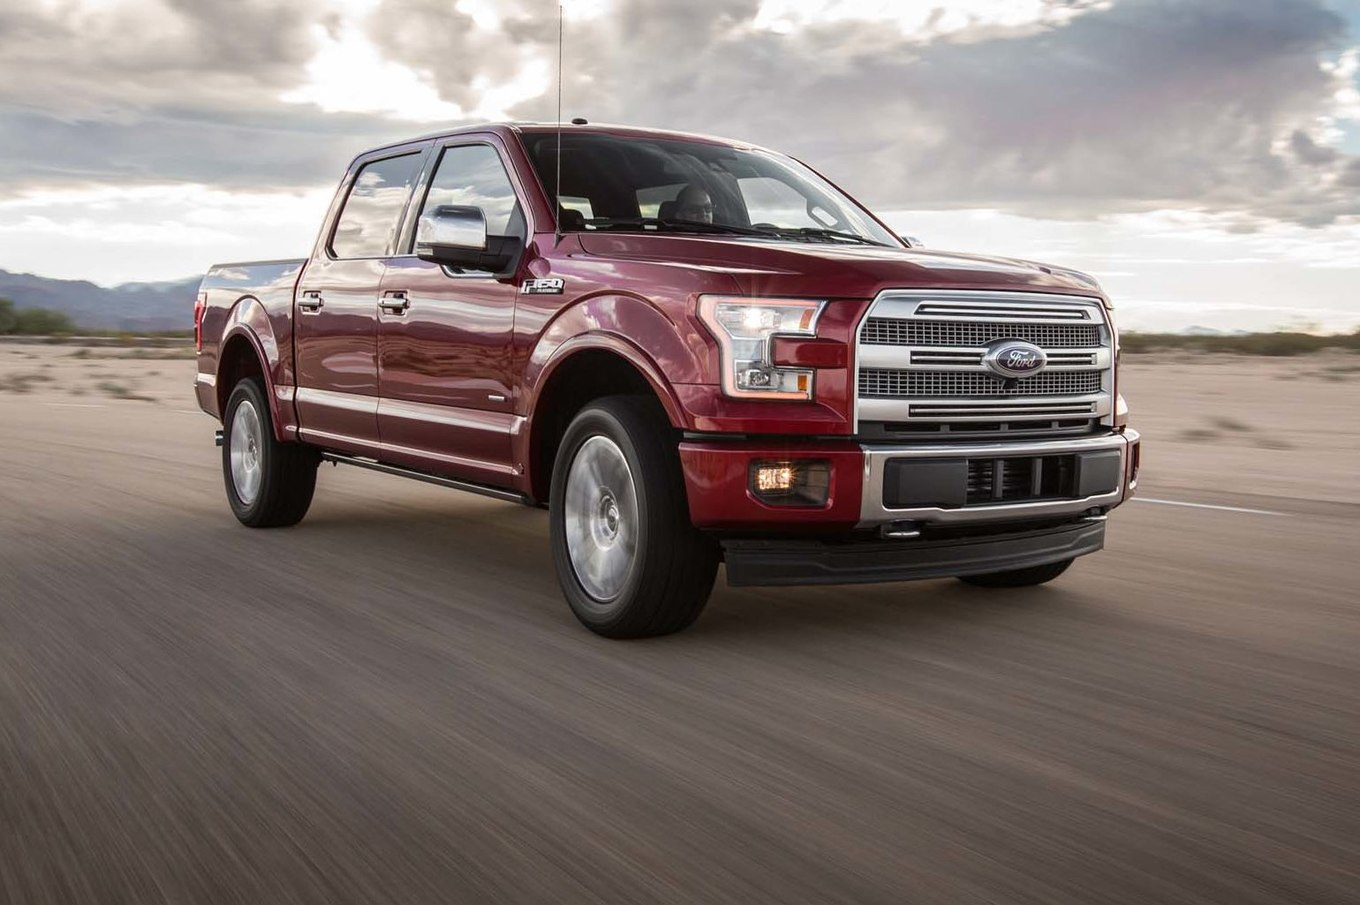 Ford f photo - 7